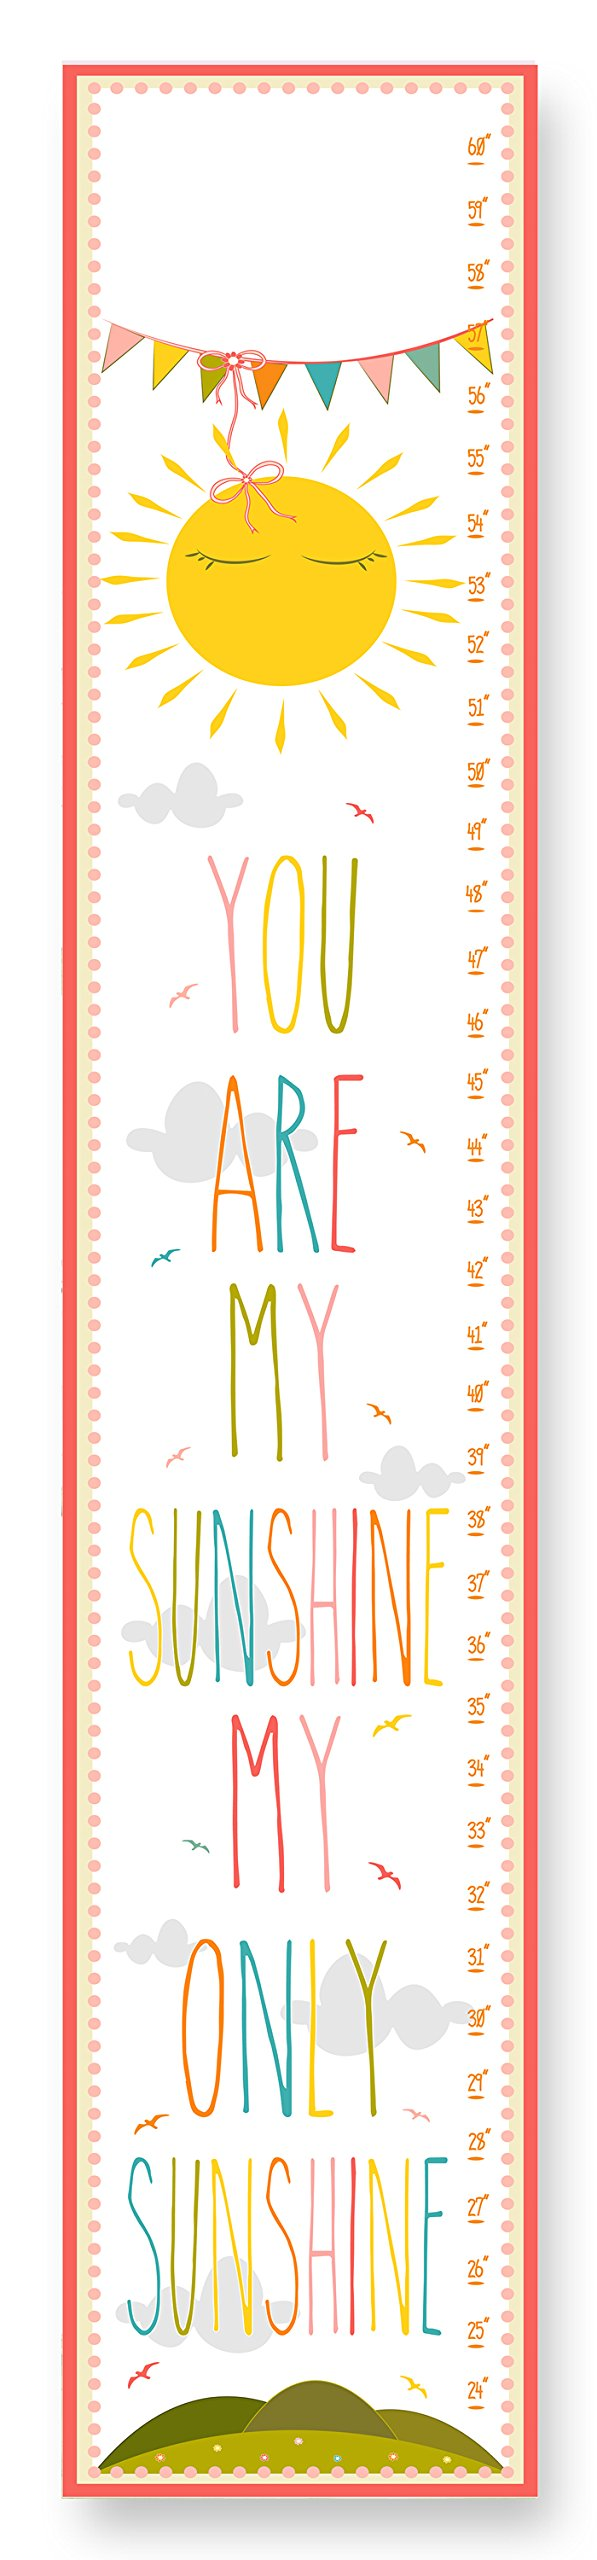 The Kids Room by Stupell You are My Sunshine Growth Chart, 7 x 0.5 x 39, Proudly Made in USA by The Kids Room by Stupell